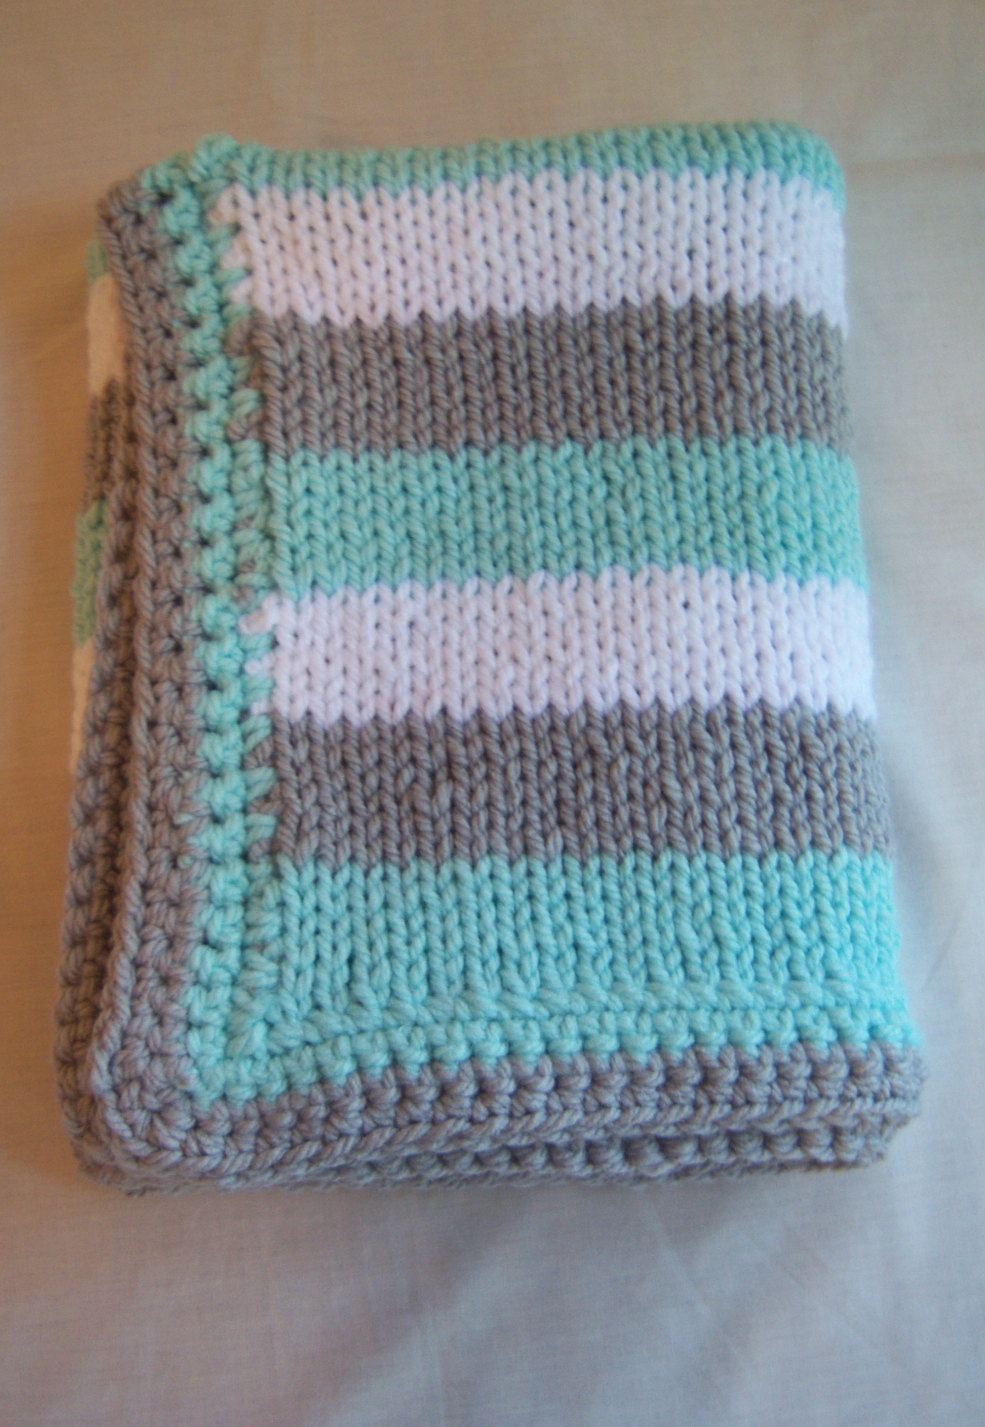 Knit Chunky Baby Blanket Striped with Teal White and Grey ...